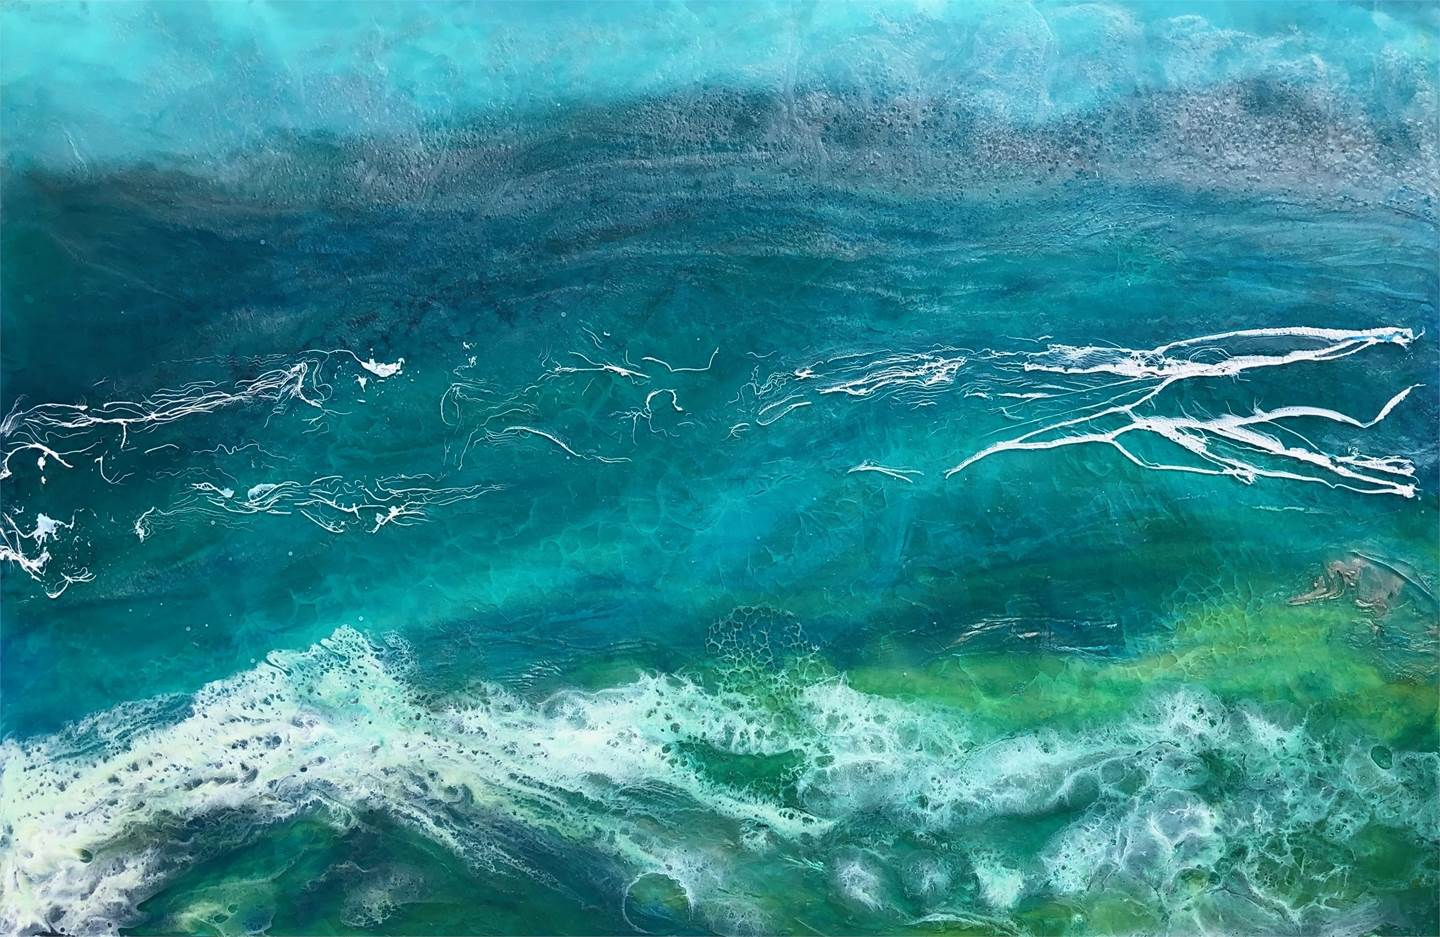 Sea Swells, original Landscape Mixed Technique Painting by Tiffani Buteau